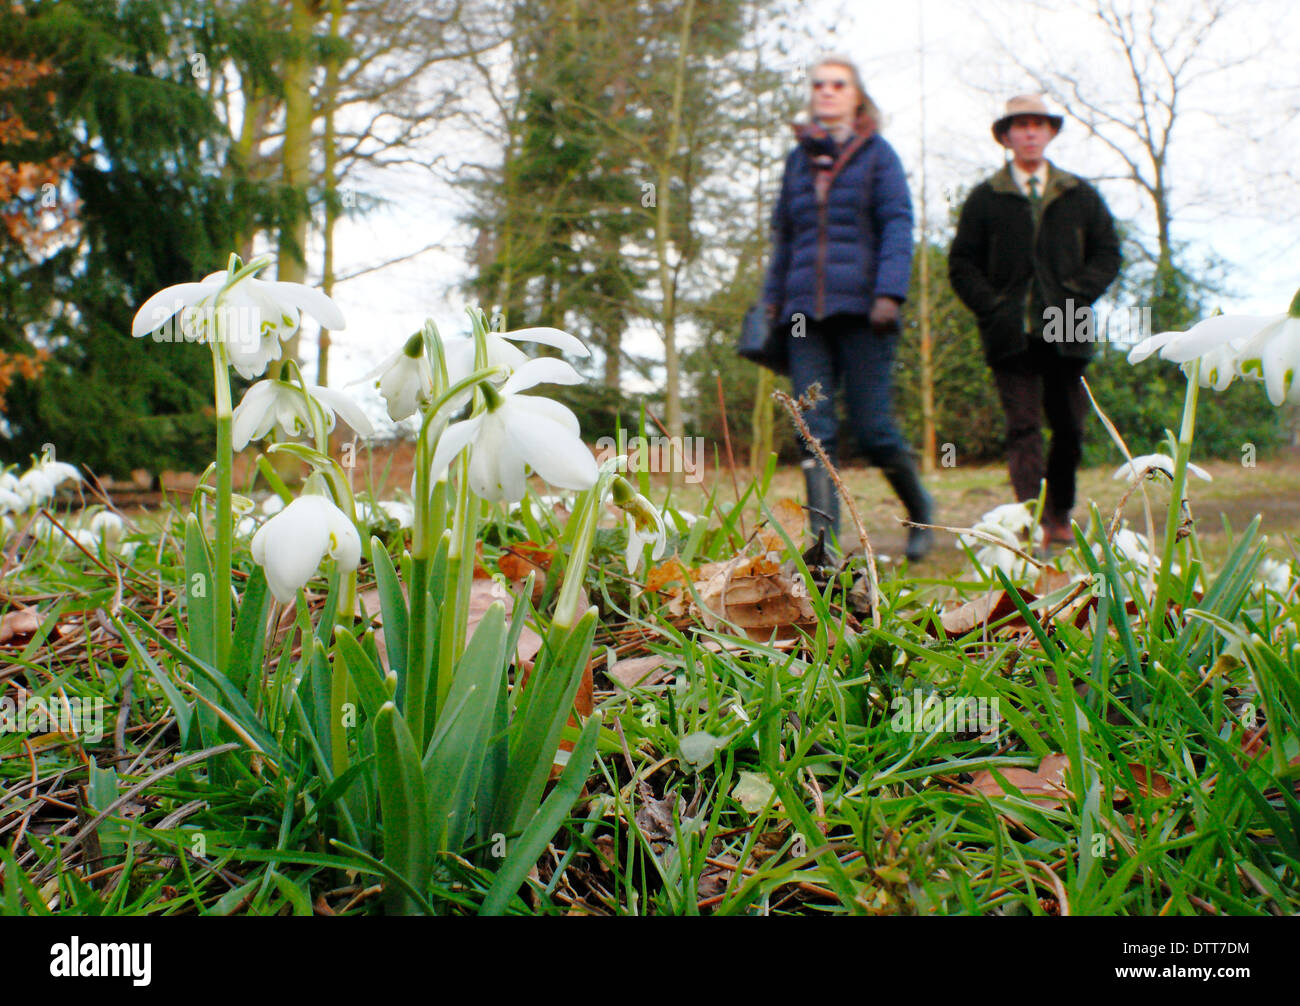 Man and woman walk by snowdrops through deciduous woodland at Hodsock Priory, Nottinghamshire, England, UK - Stock Image